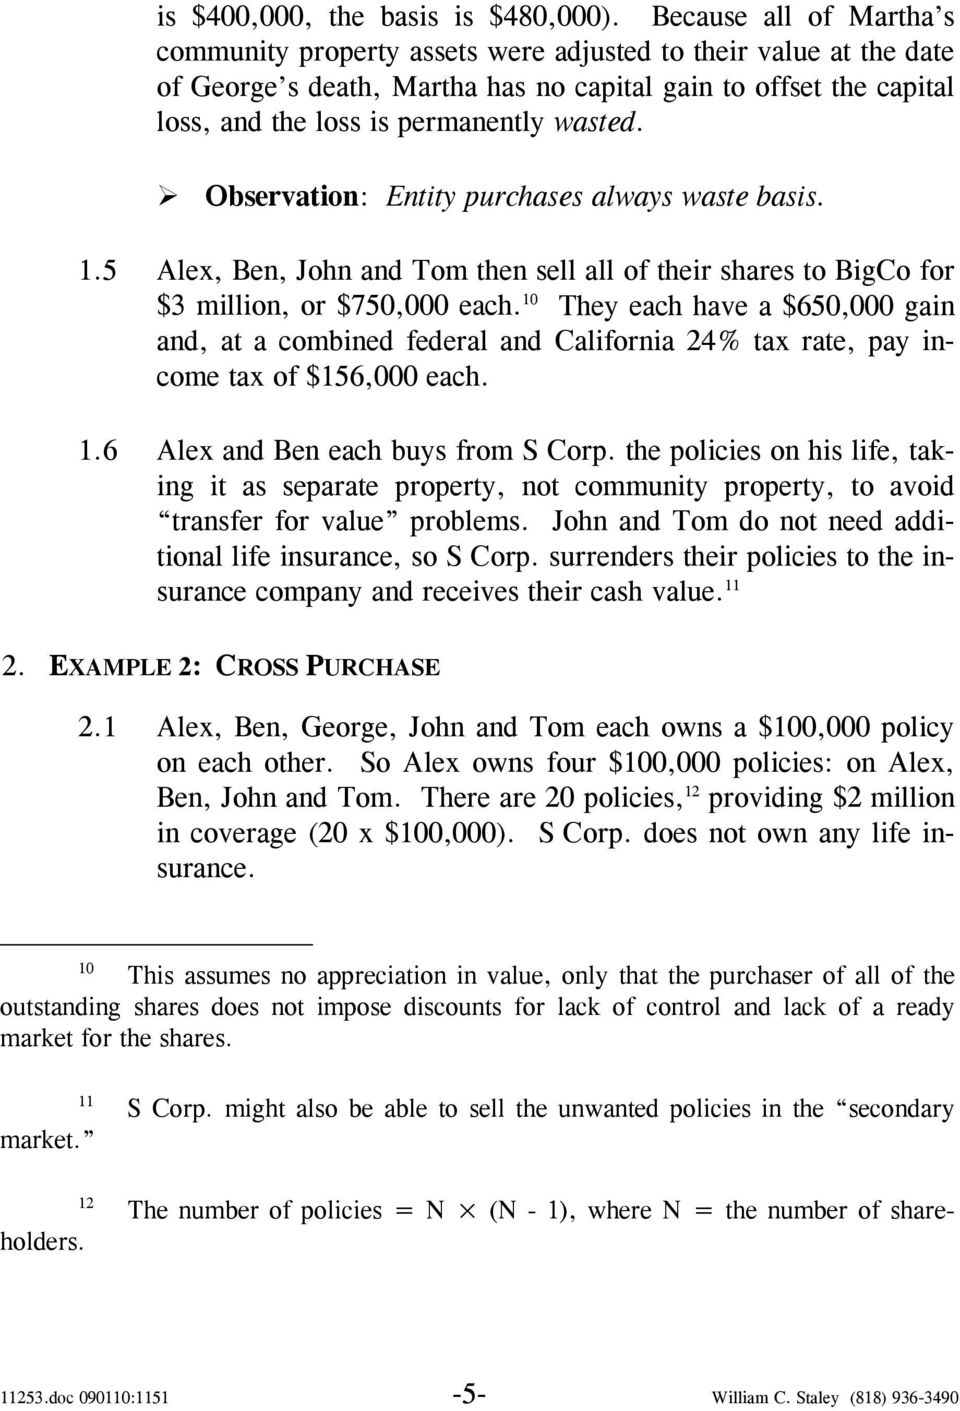 Observation: Entity purchases always waste basis. 1.5 Alex, Ben, John and Tom then sell all of their shares to BigCo for $3 million, or $750,000 each.